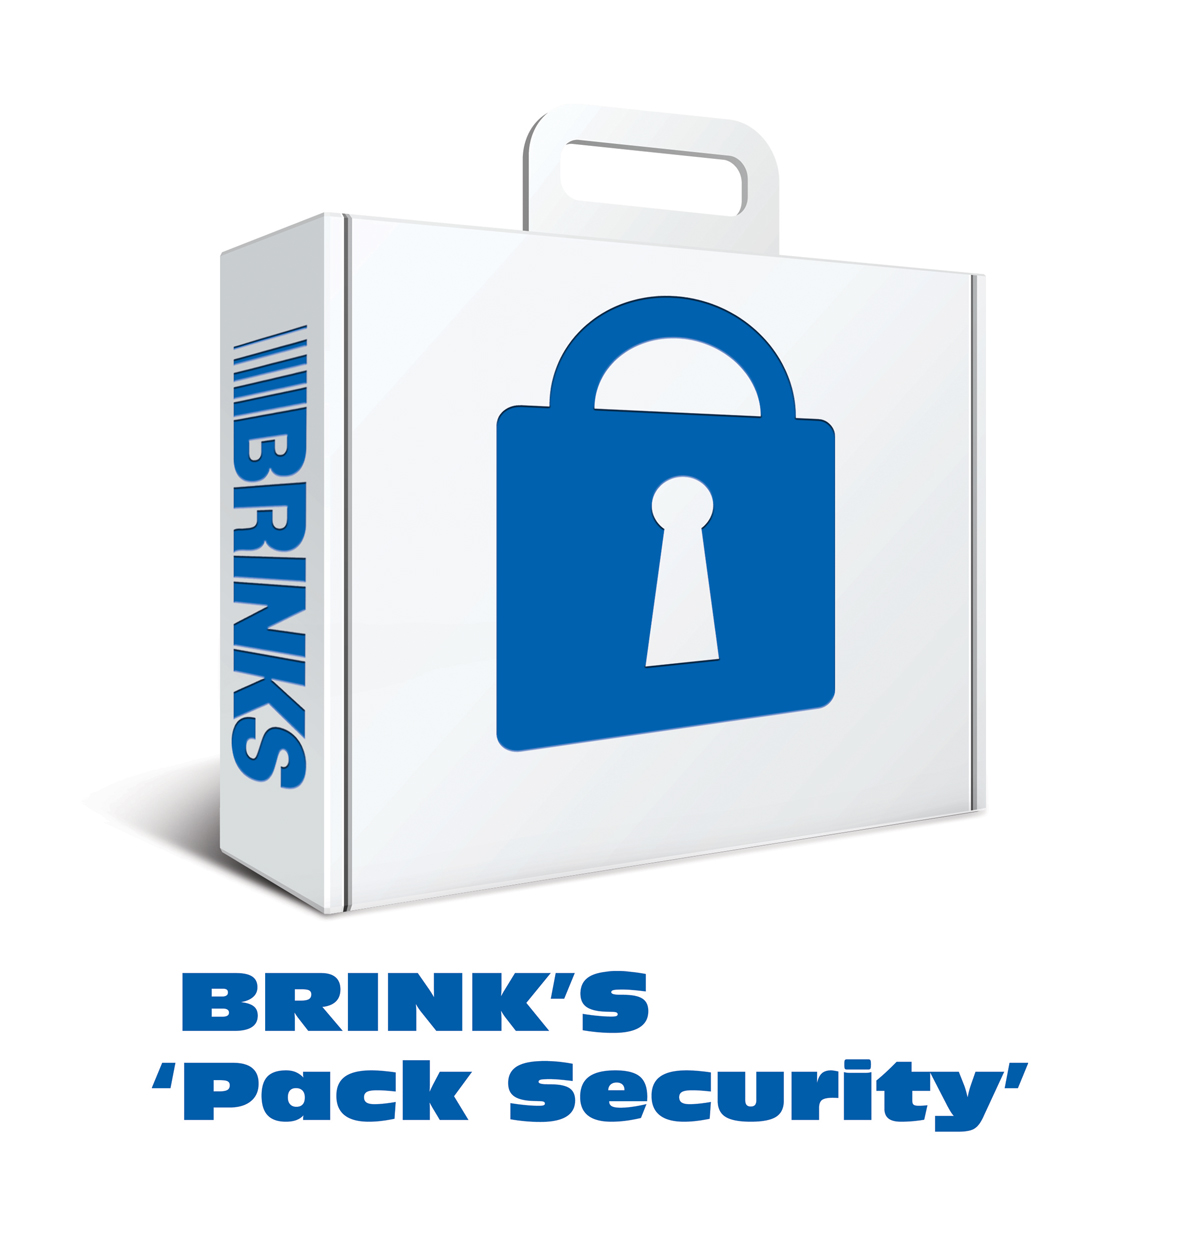 Brinks.io-Mauritius-pack-security